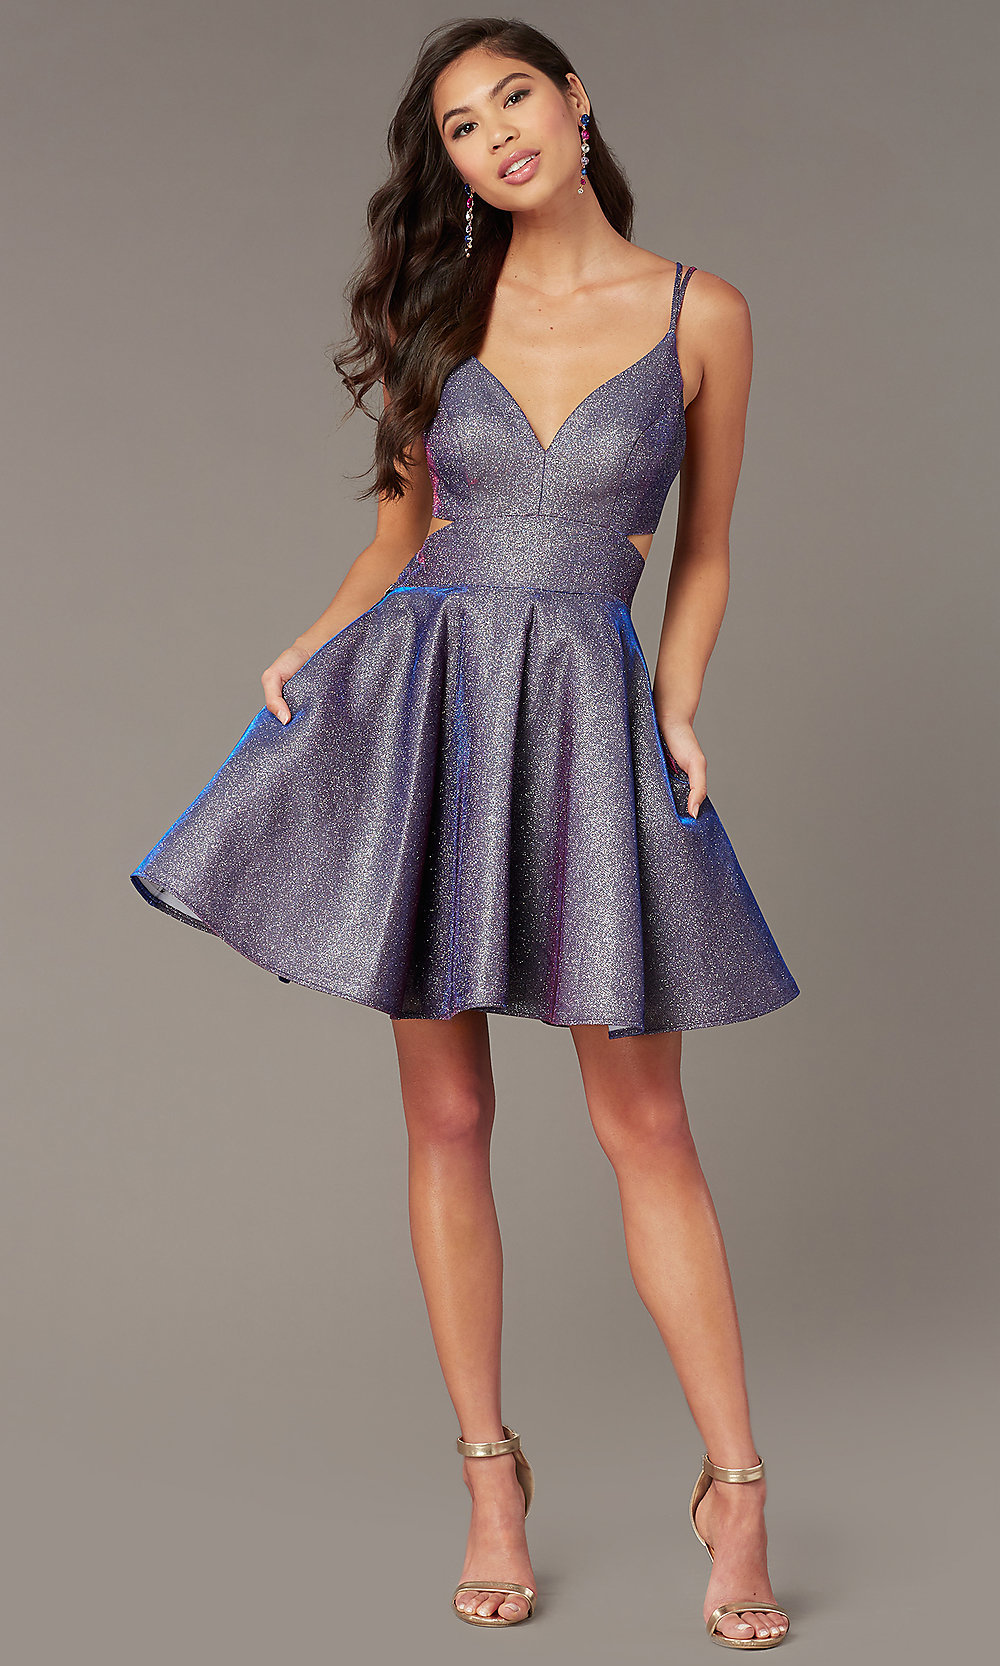 Iridescent Glitter Short Blue Hoco Dress Promgirl